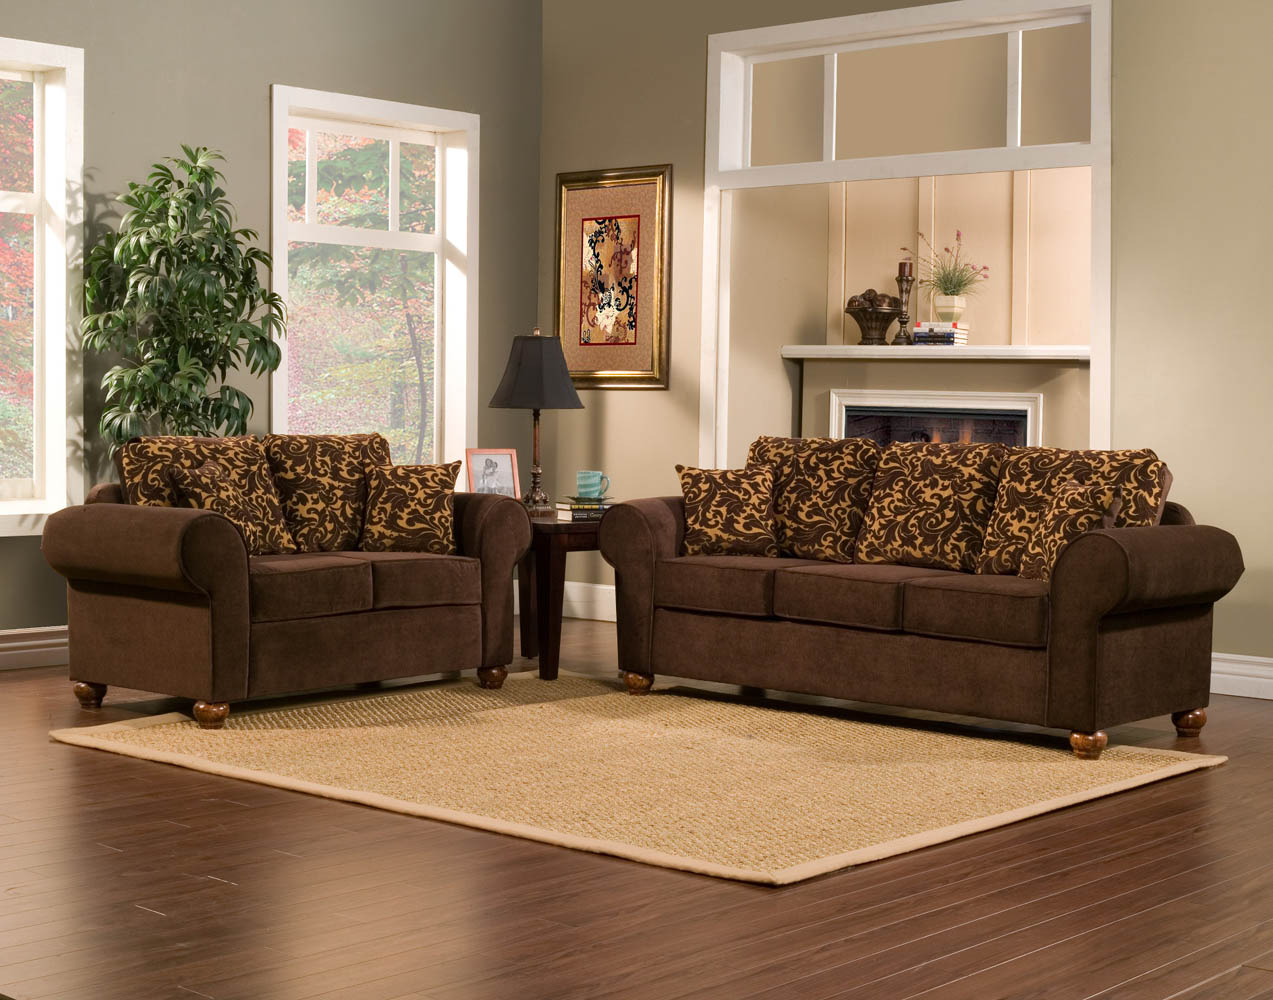 2 piece brown sofa set with flowery gold pattern for Gold sofa living room